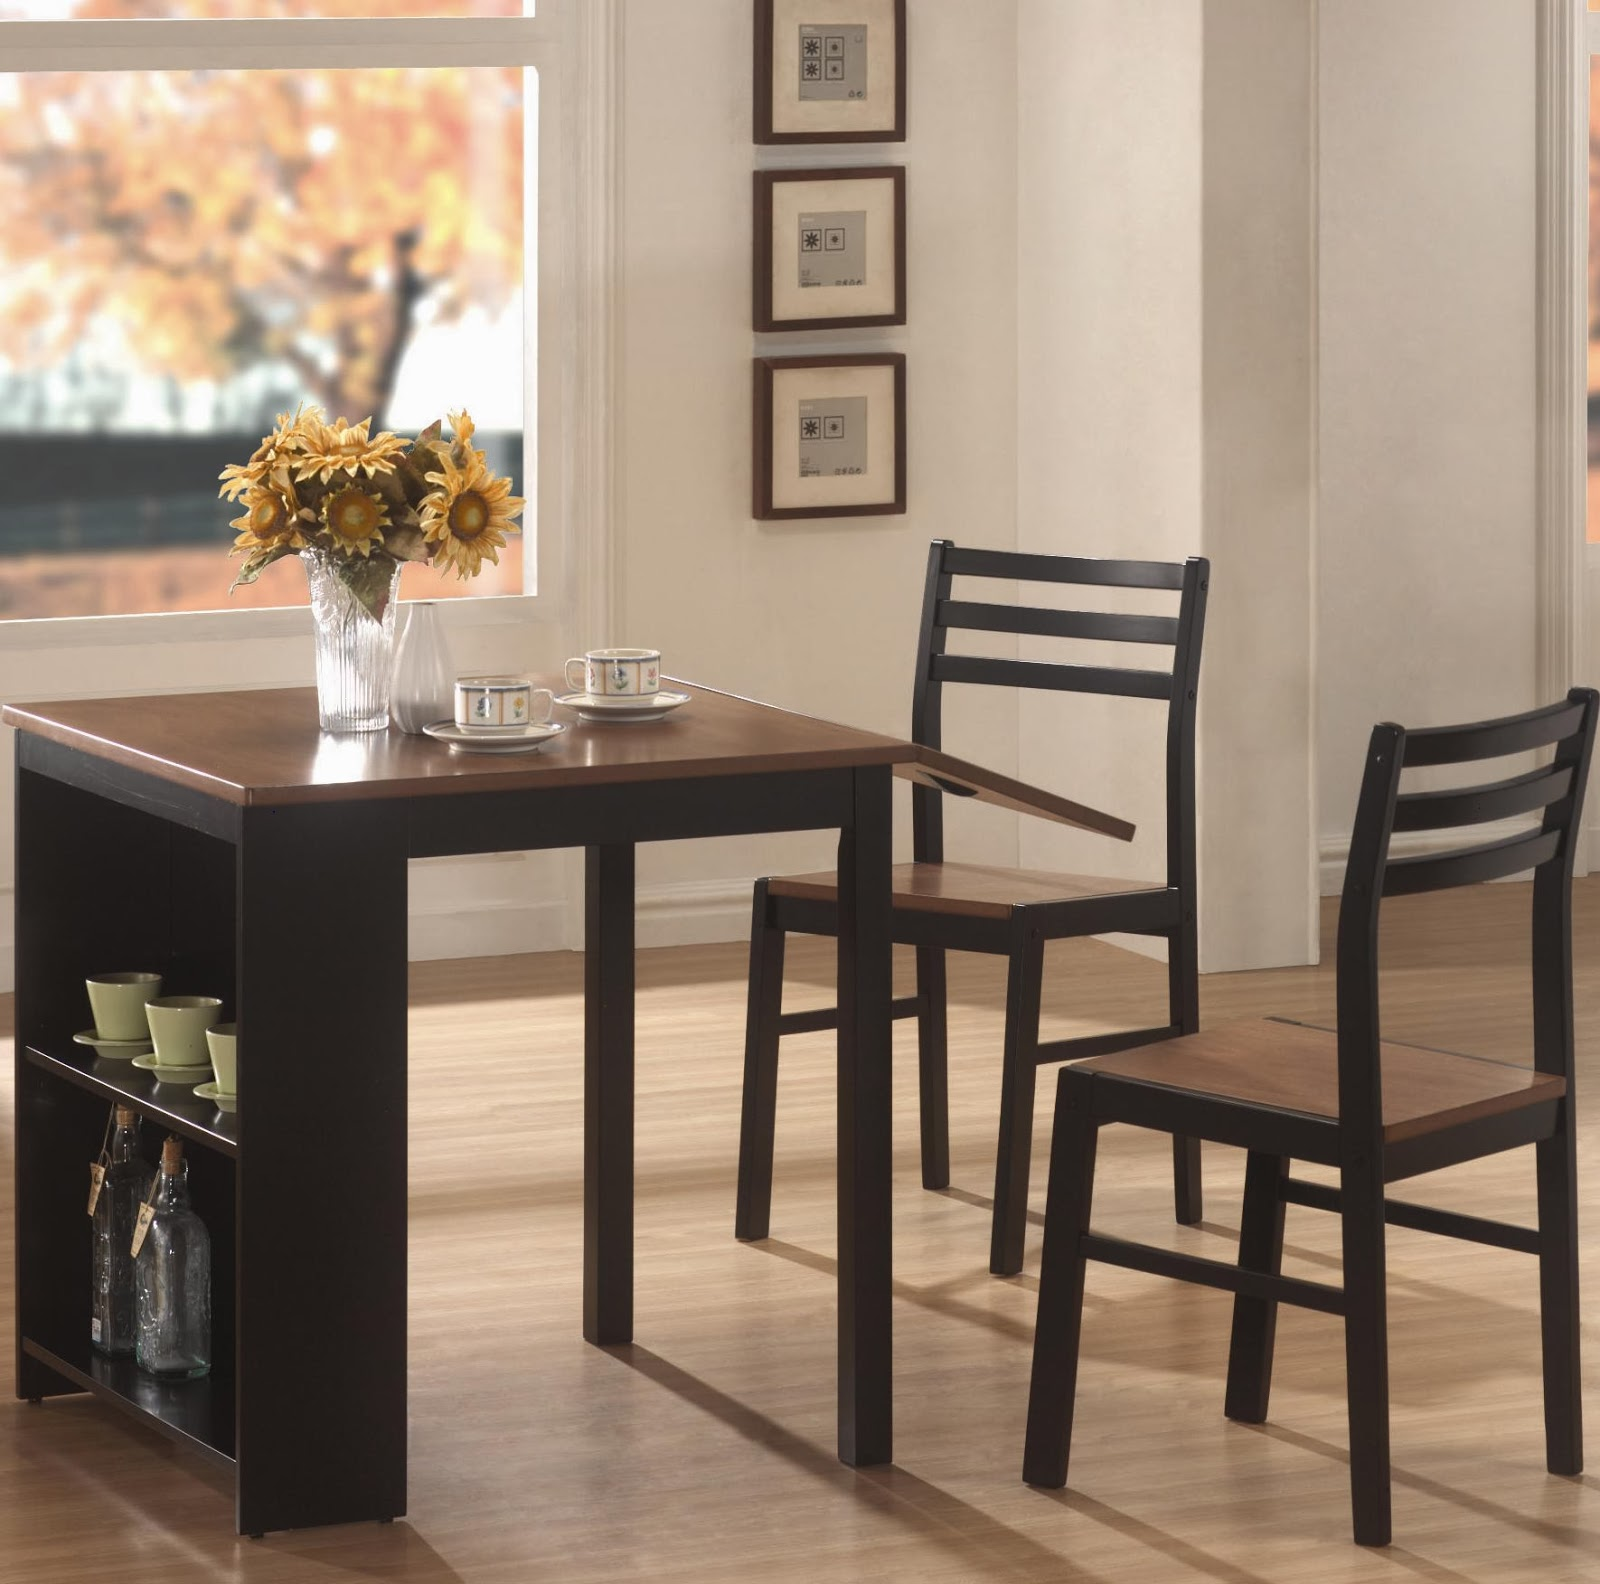 One Hundred Home Modern Kitchen Tables Small Spaces